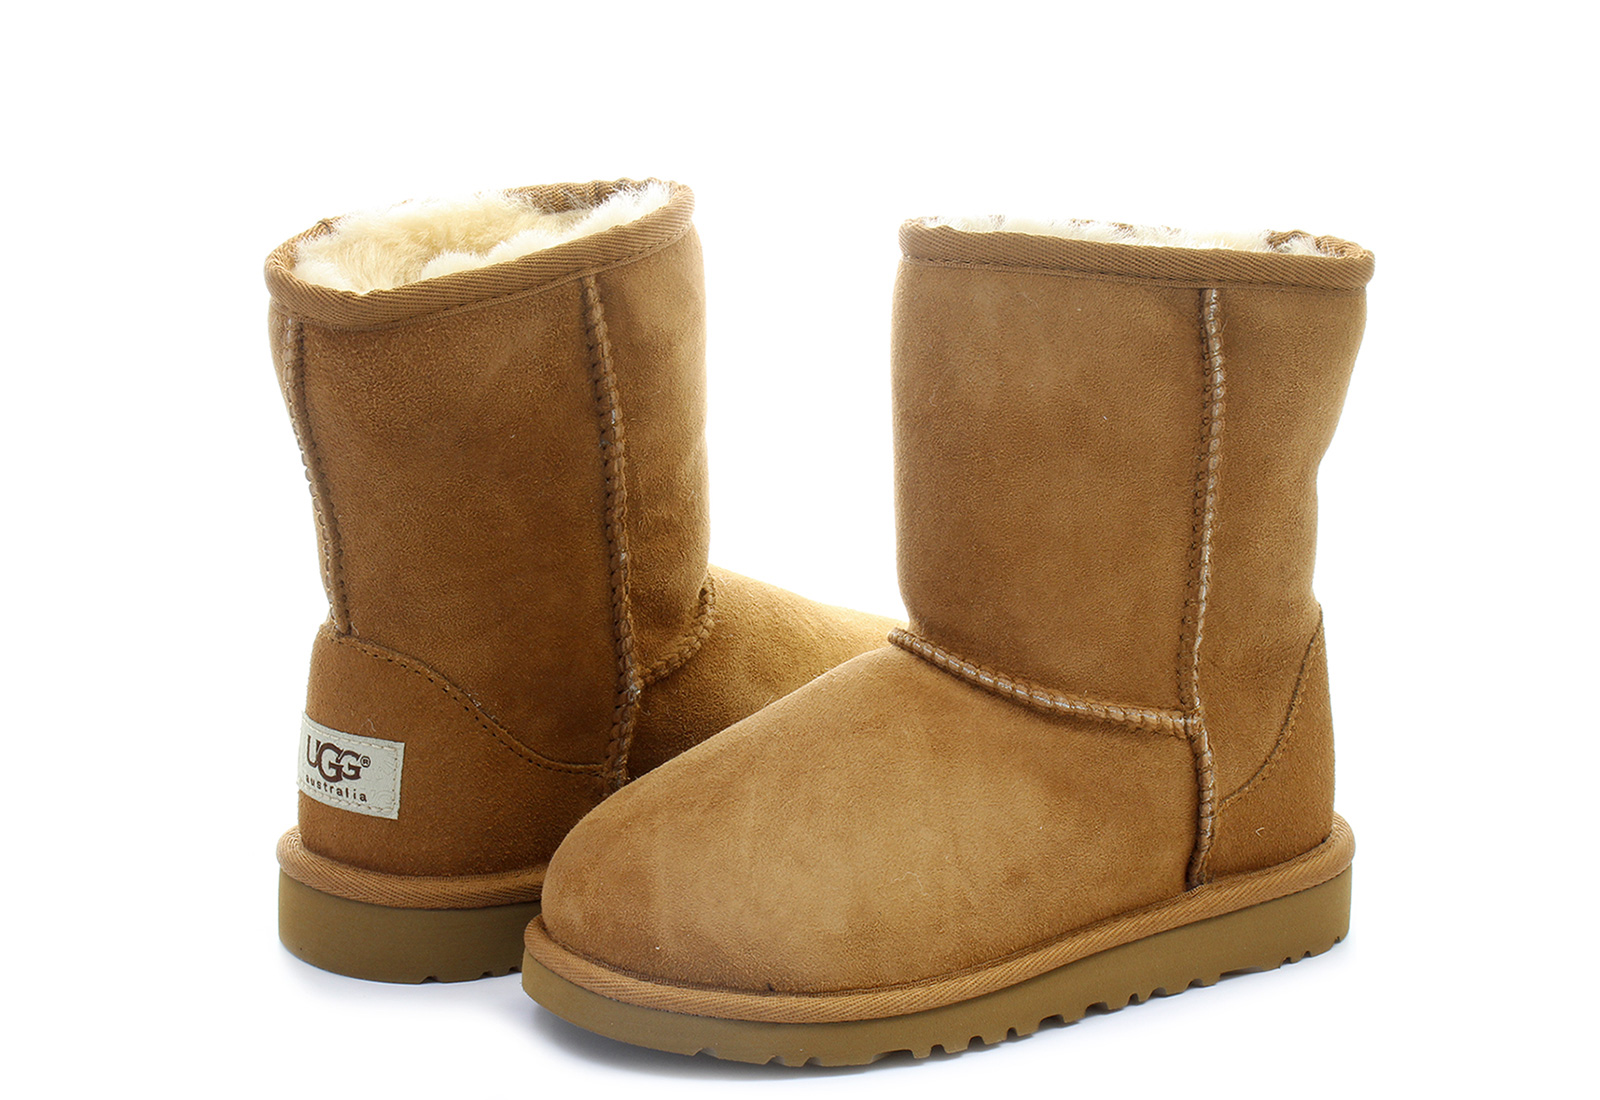 Ugg boots (in the generic sense) originated in Australia and came about around years ago, along time before the 'UGG® Australia' brand was born i.e. 'UGG® Australia' are not the original manufacturers of ugg boots (in the generic sense of the word).